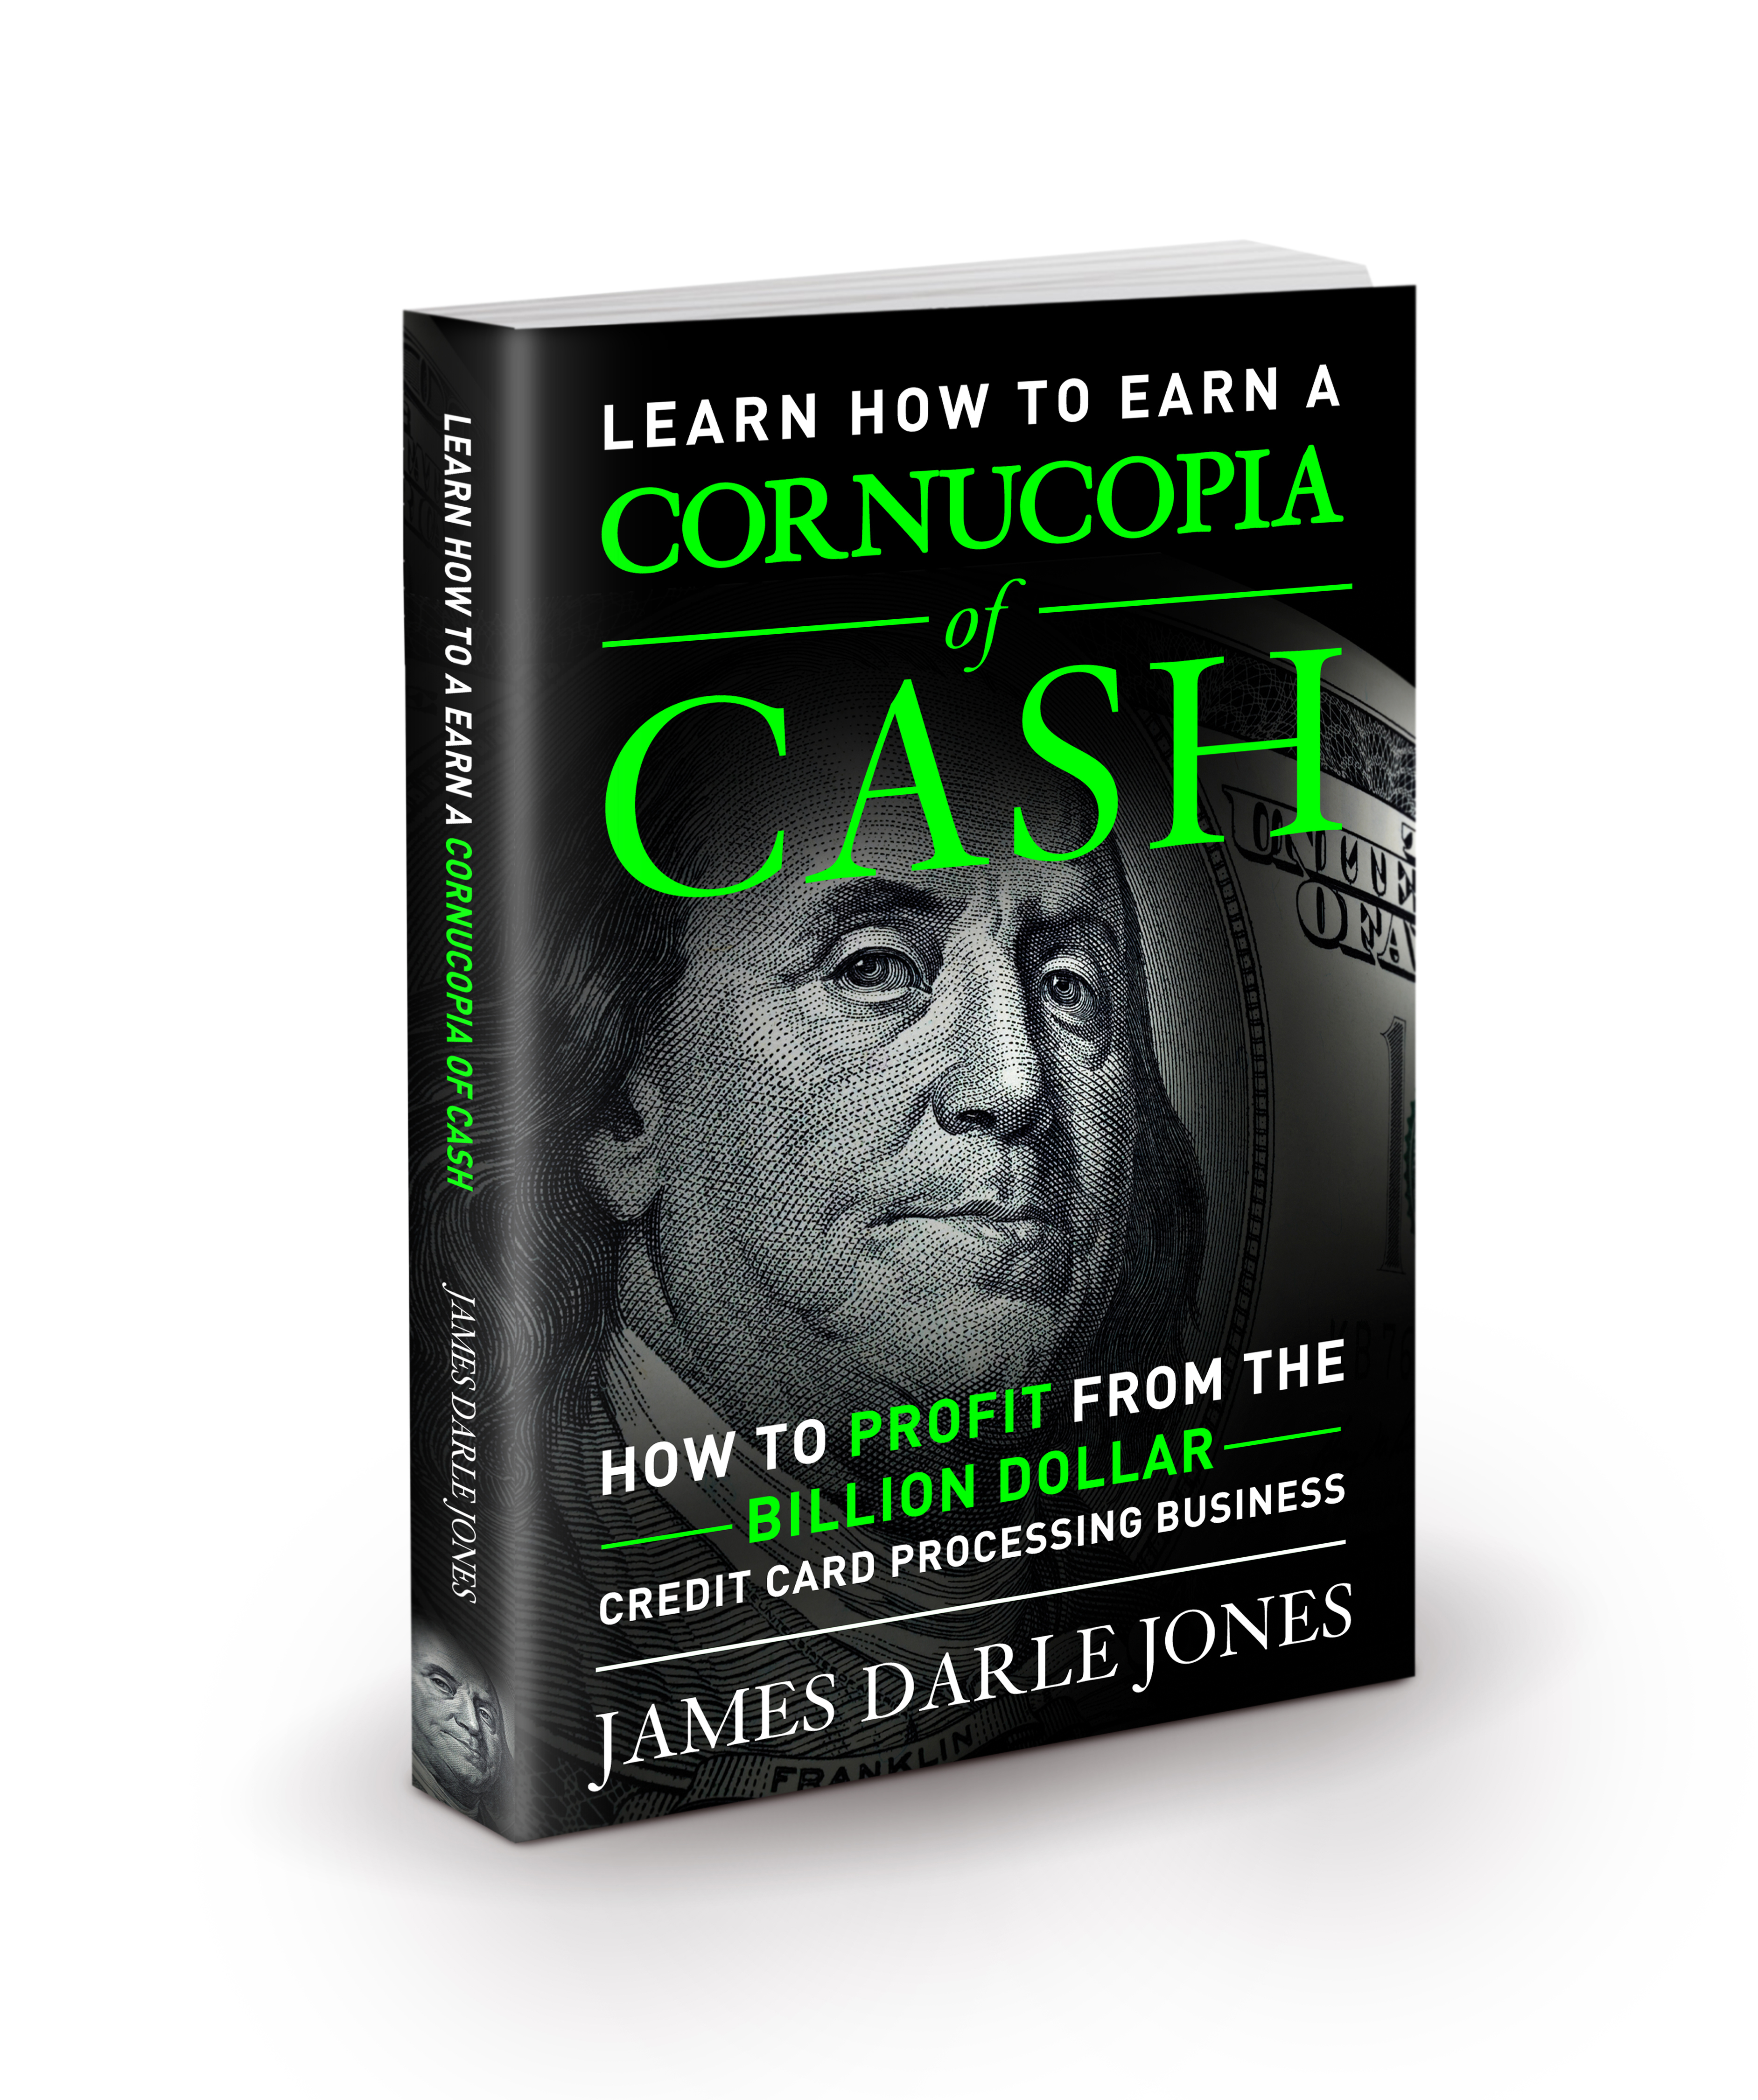 """Cornucopia of Cash"" How to Profit from the Billion Dollar Credit Card Processing Business"